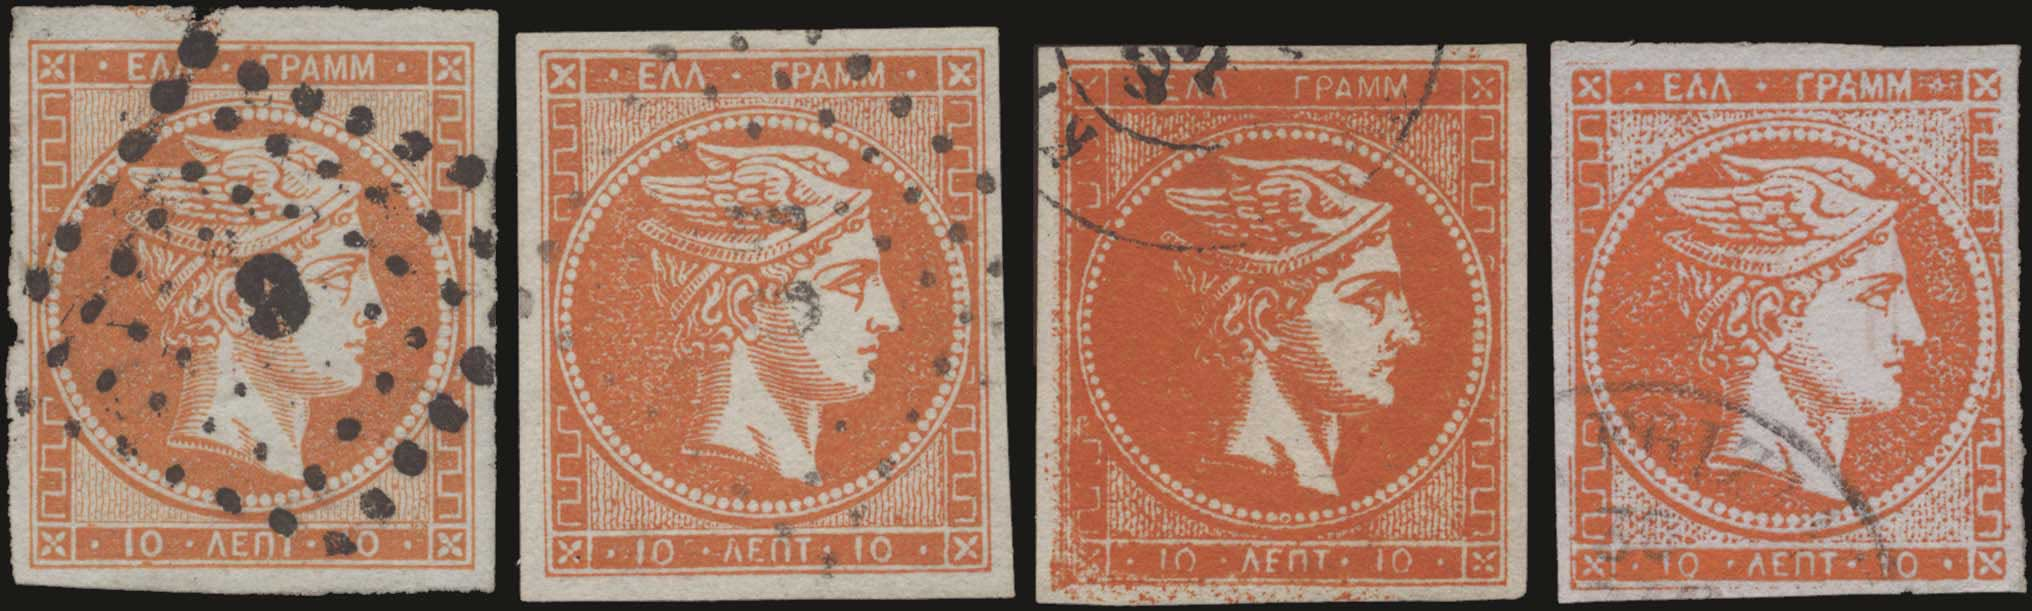 Lot 167 - -  LARGE HERMES HEAD 1871/76 meshed paper -  A. Karamitsos Public Auction 635 General Stamp Sale